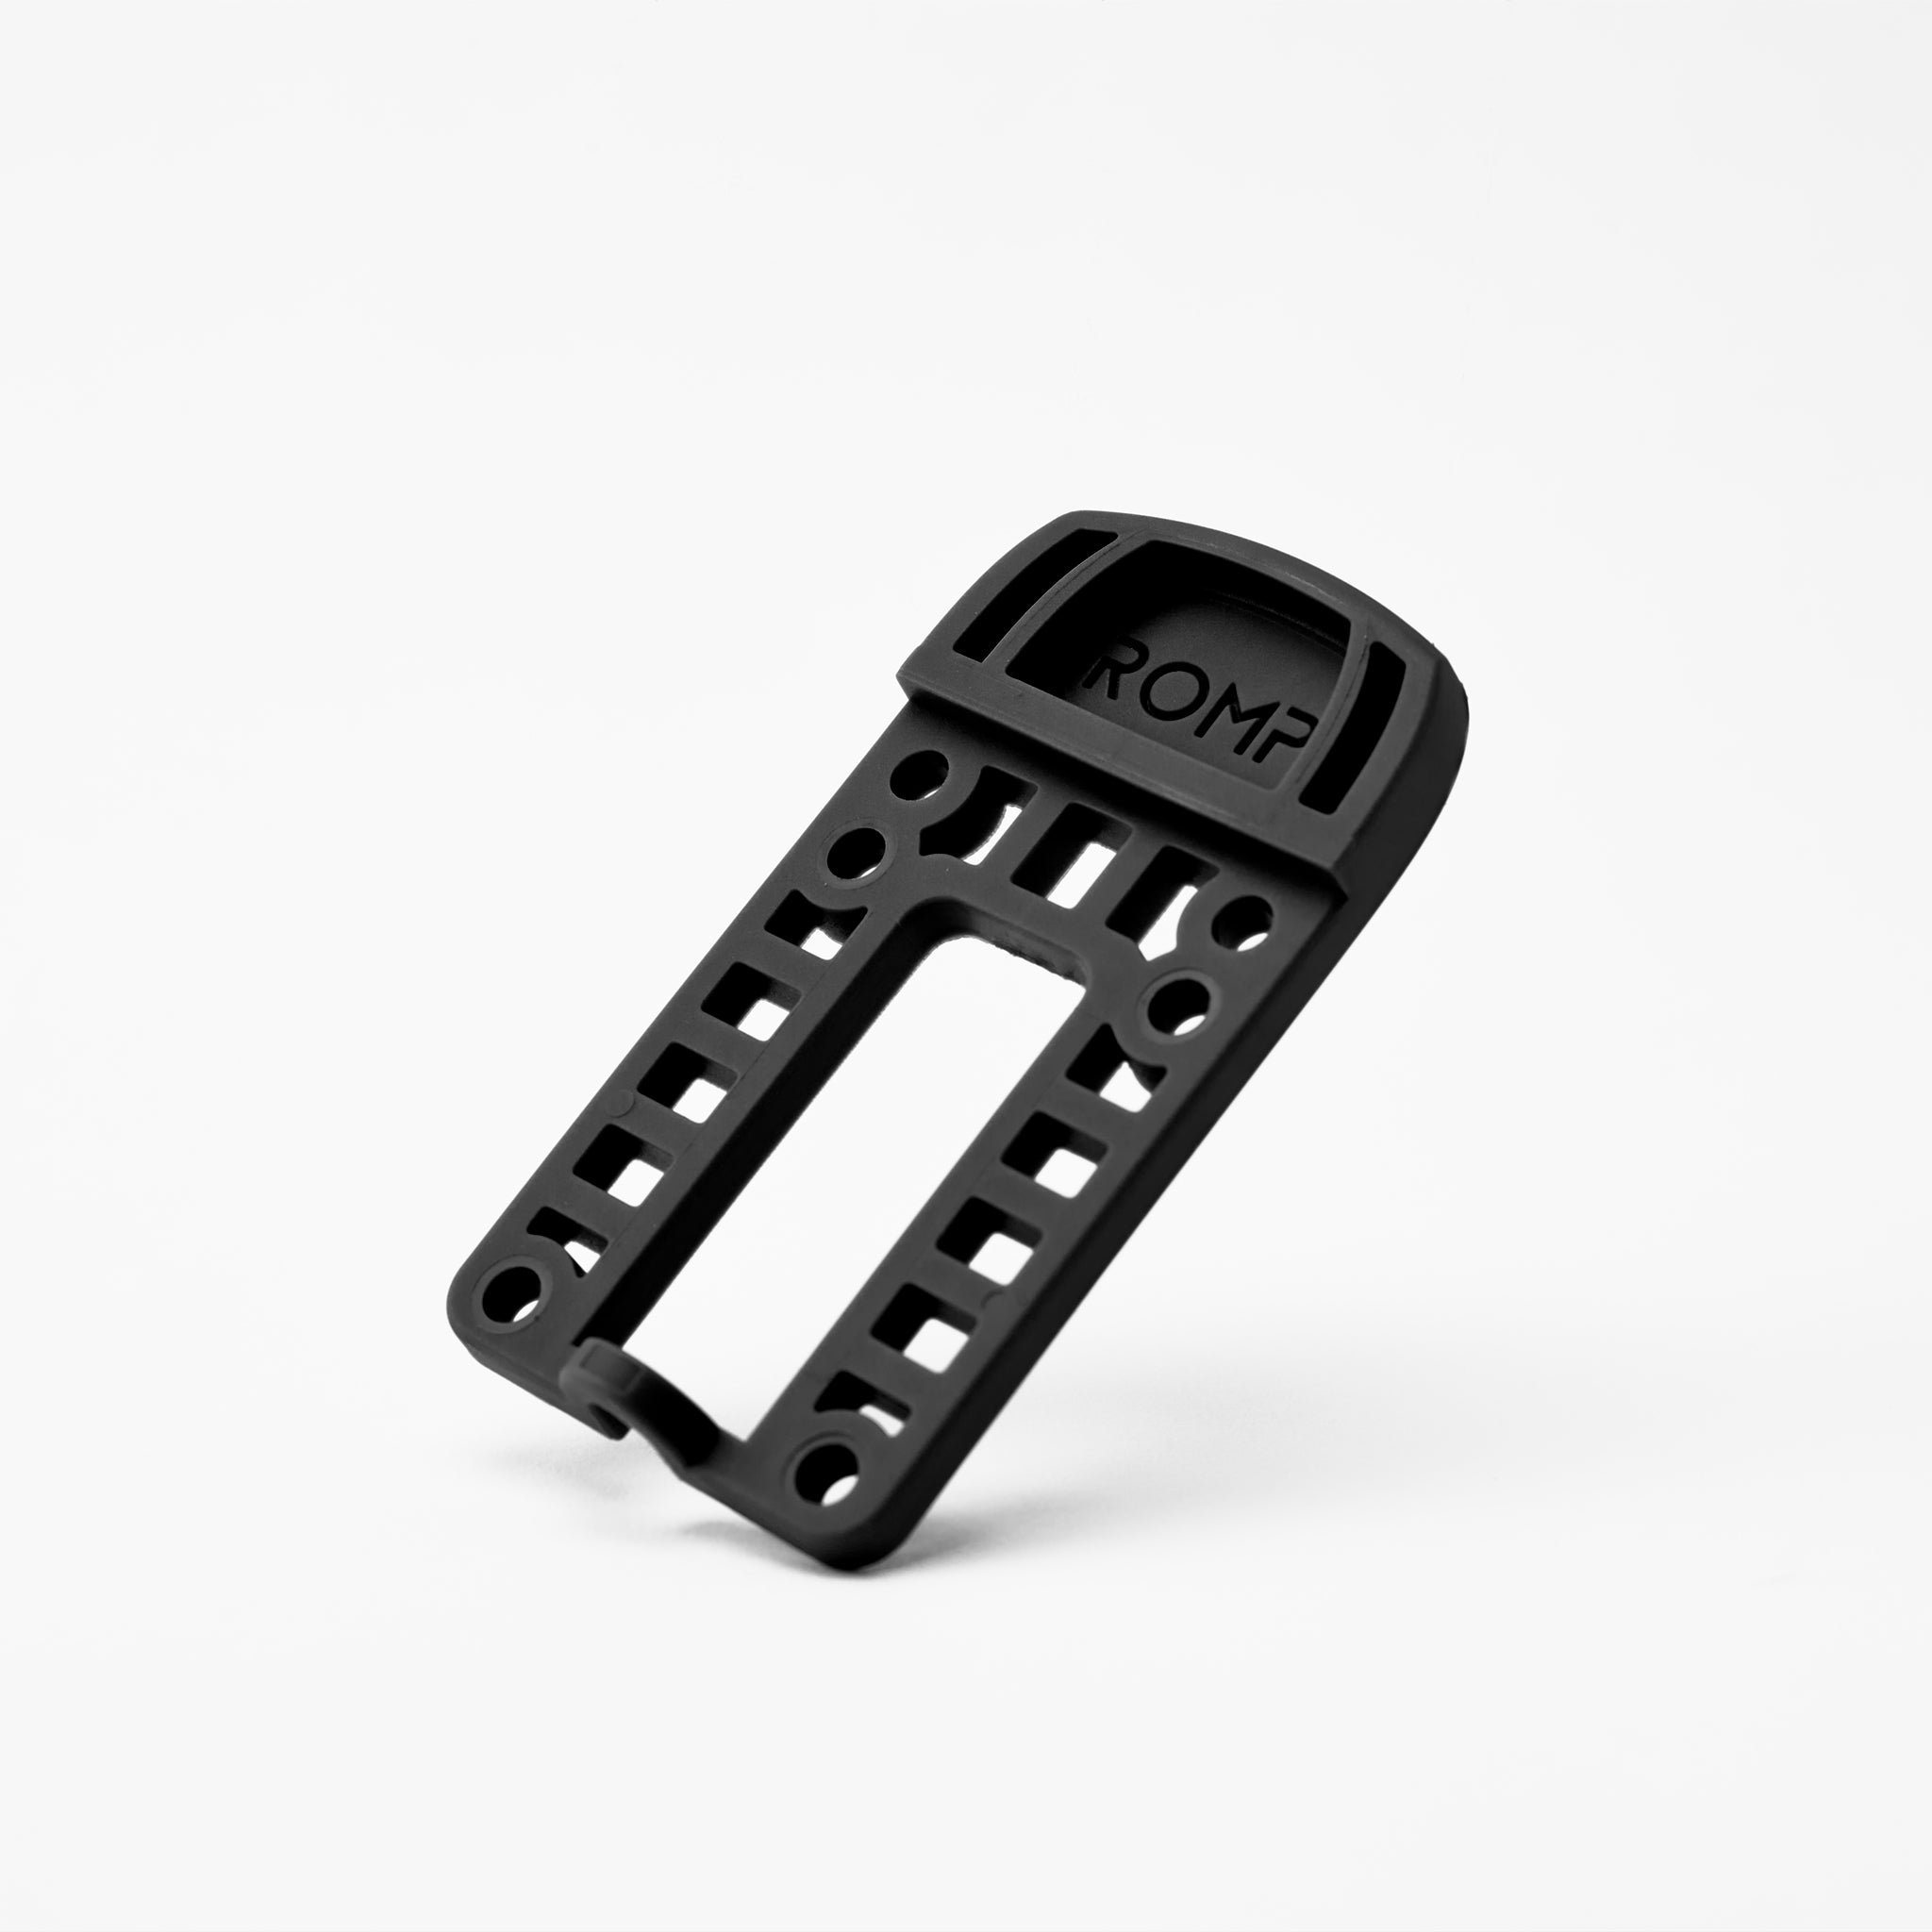 ROMP Shock Guard, STEALTH BLACK